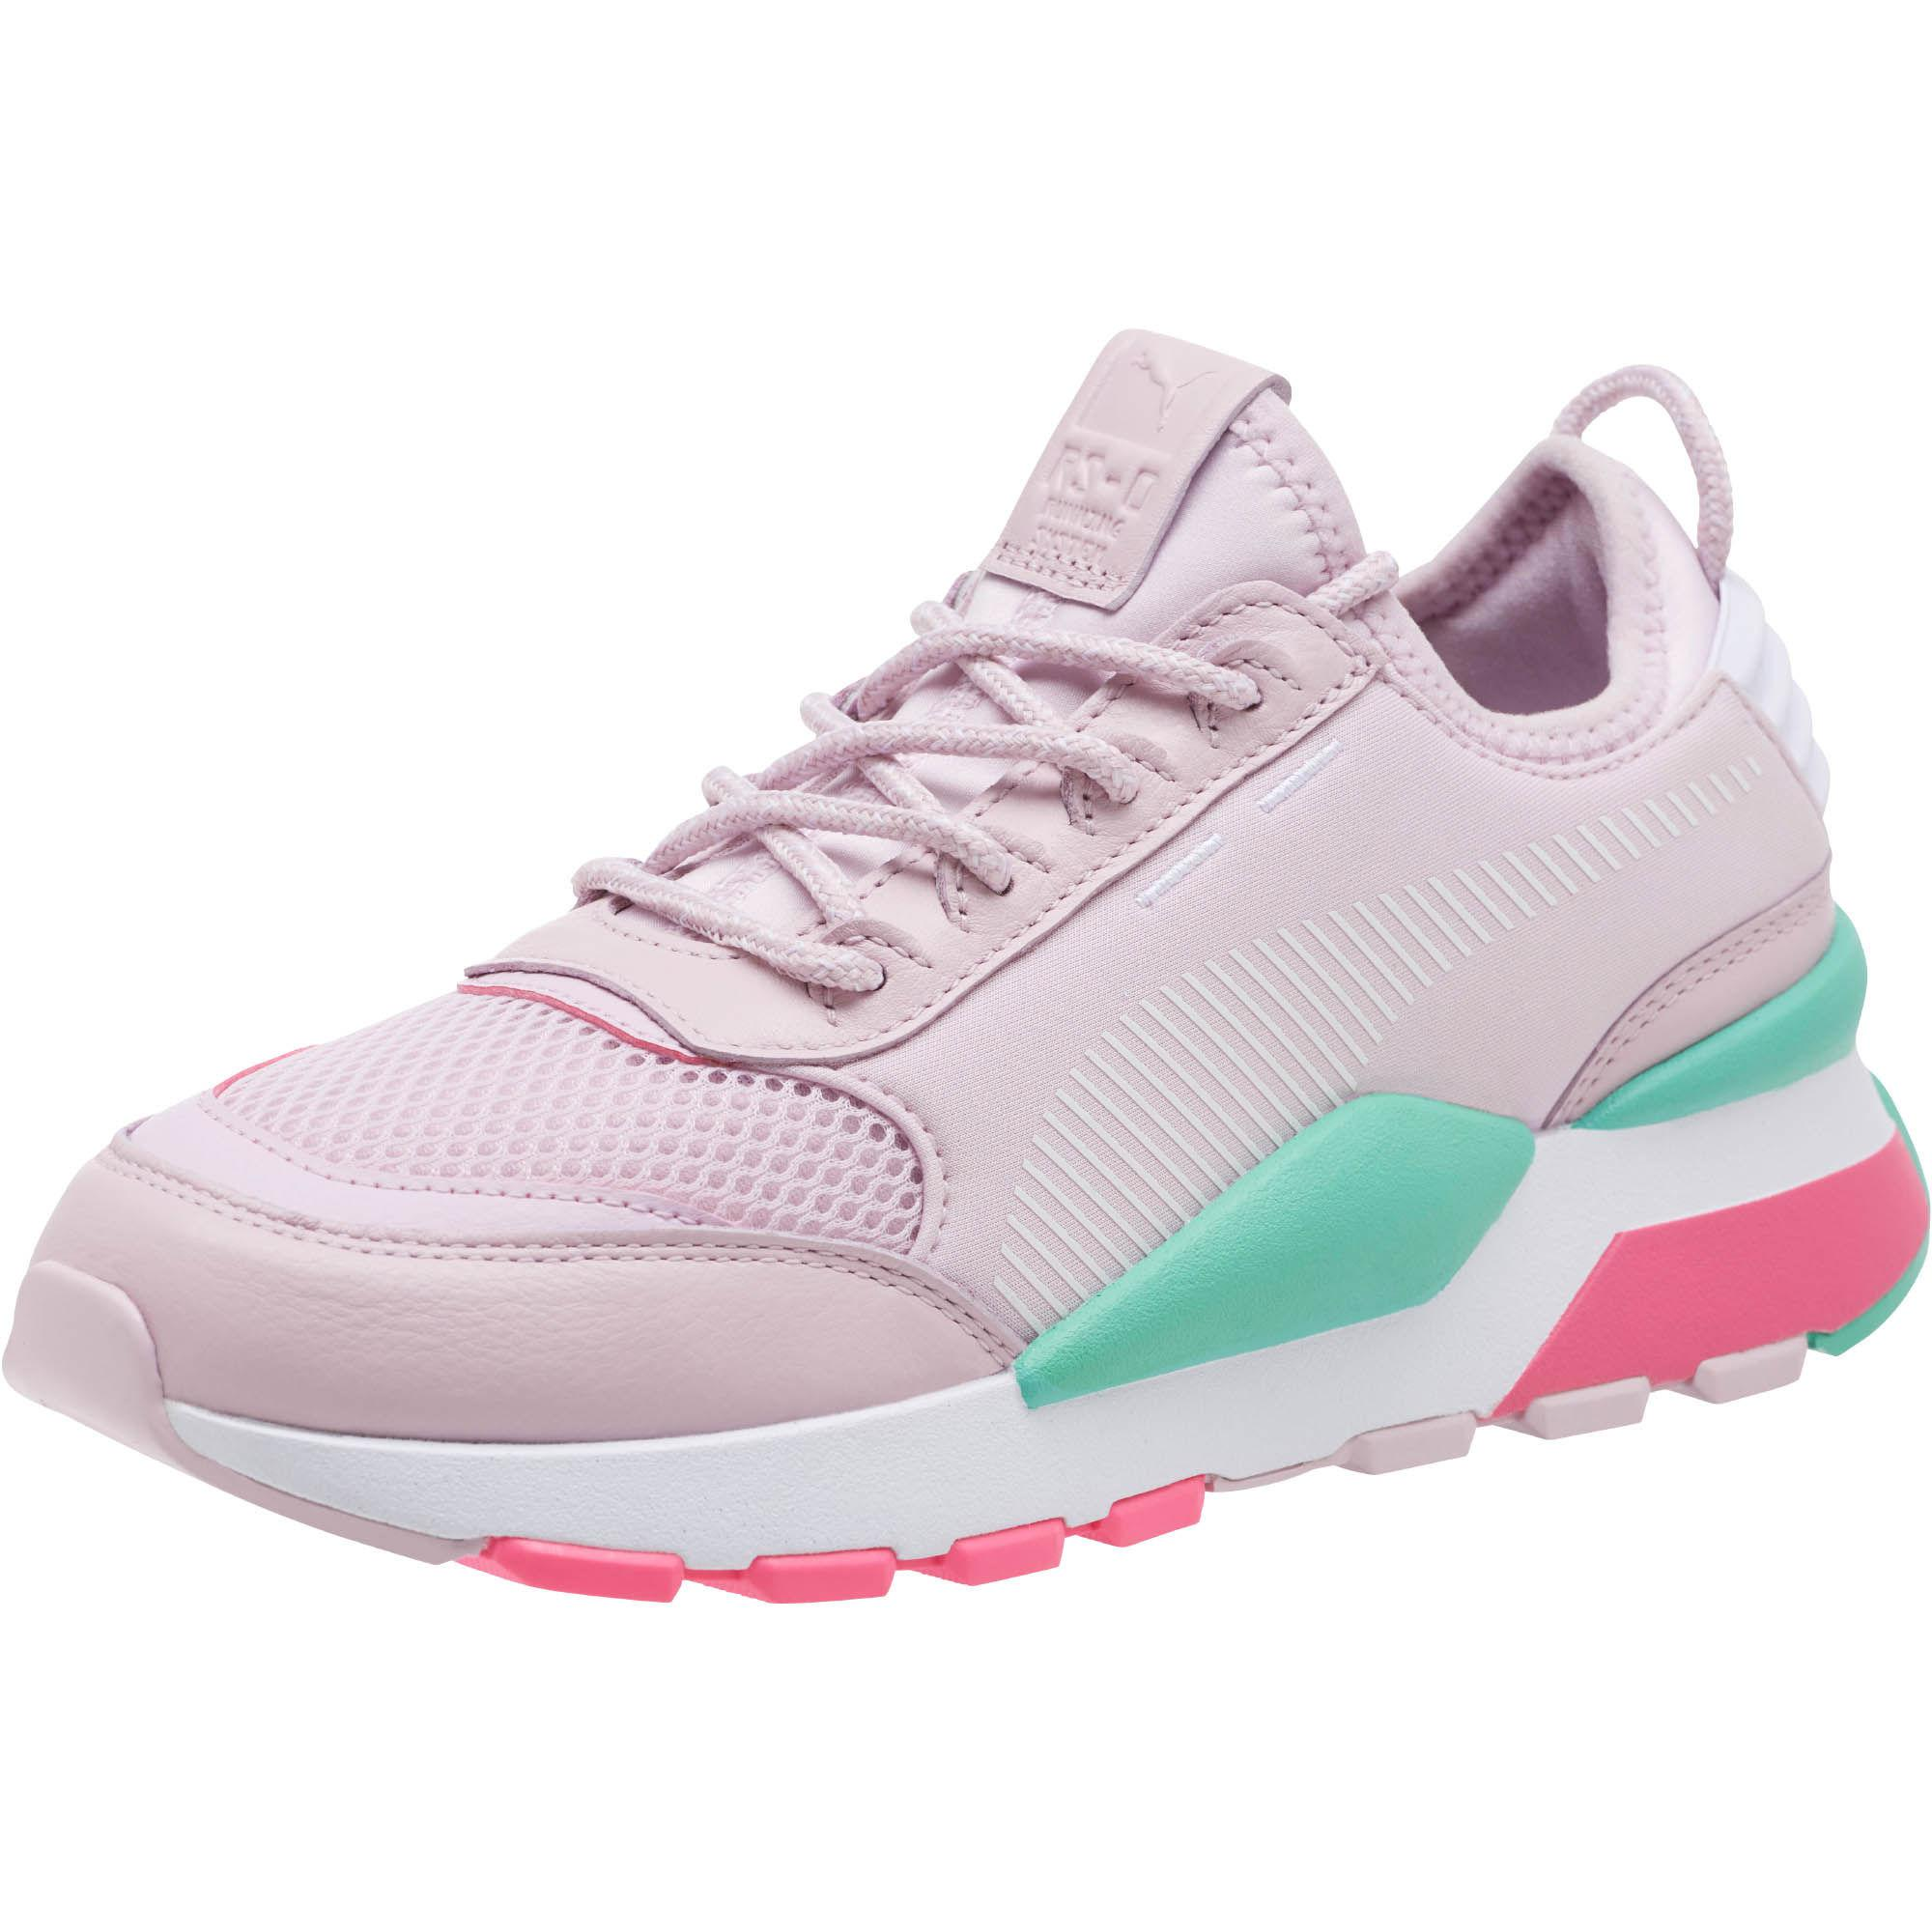 premium selection 66d99 57820 PUMA Rs-0 Play Women s Sneakers - Lyst